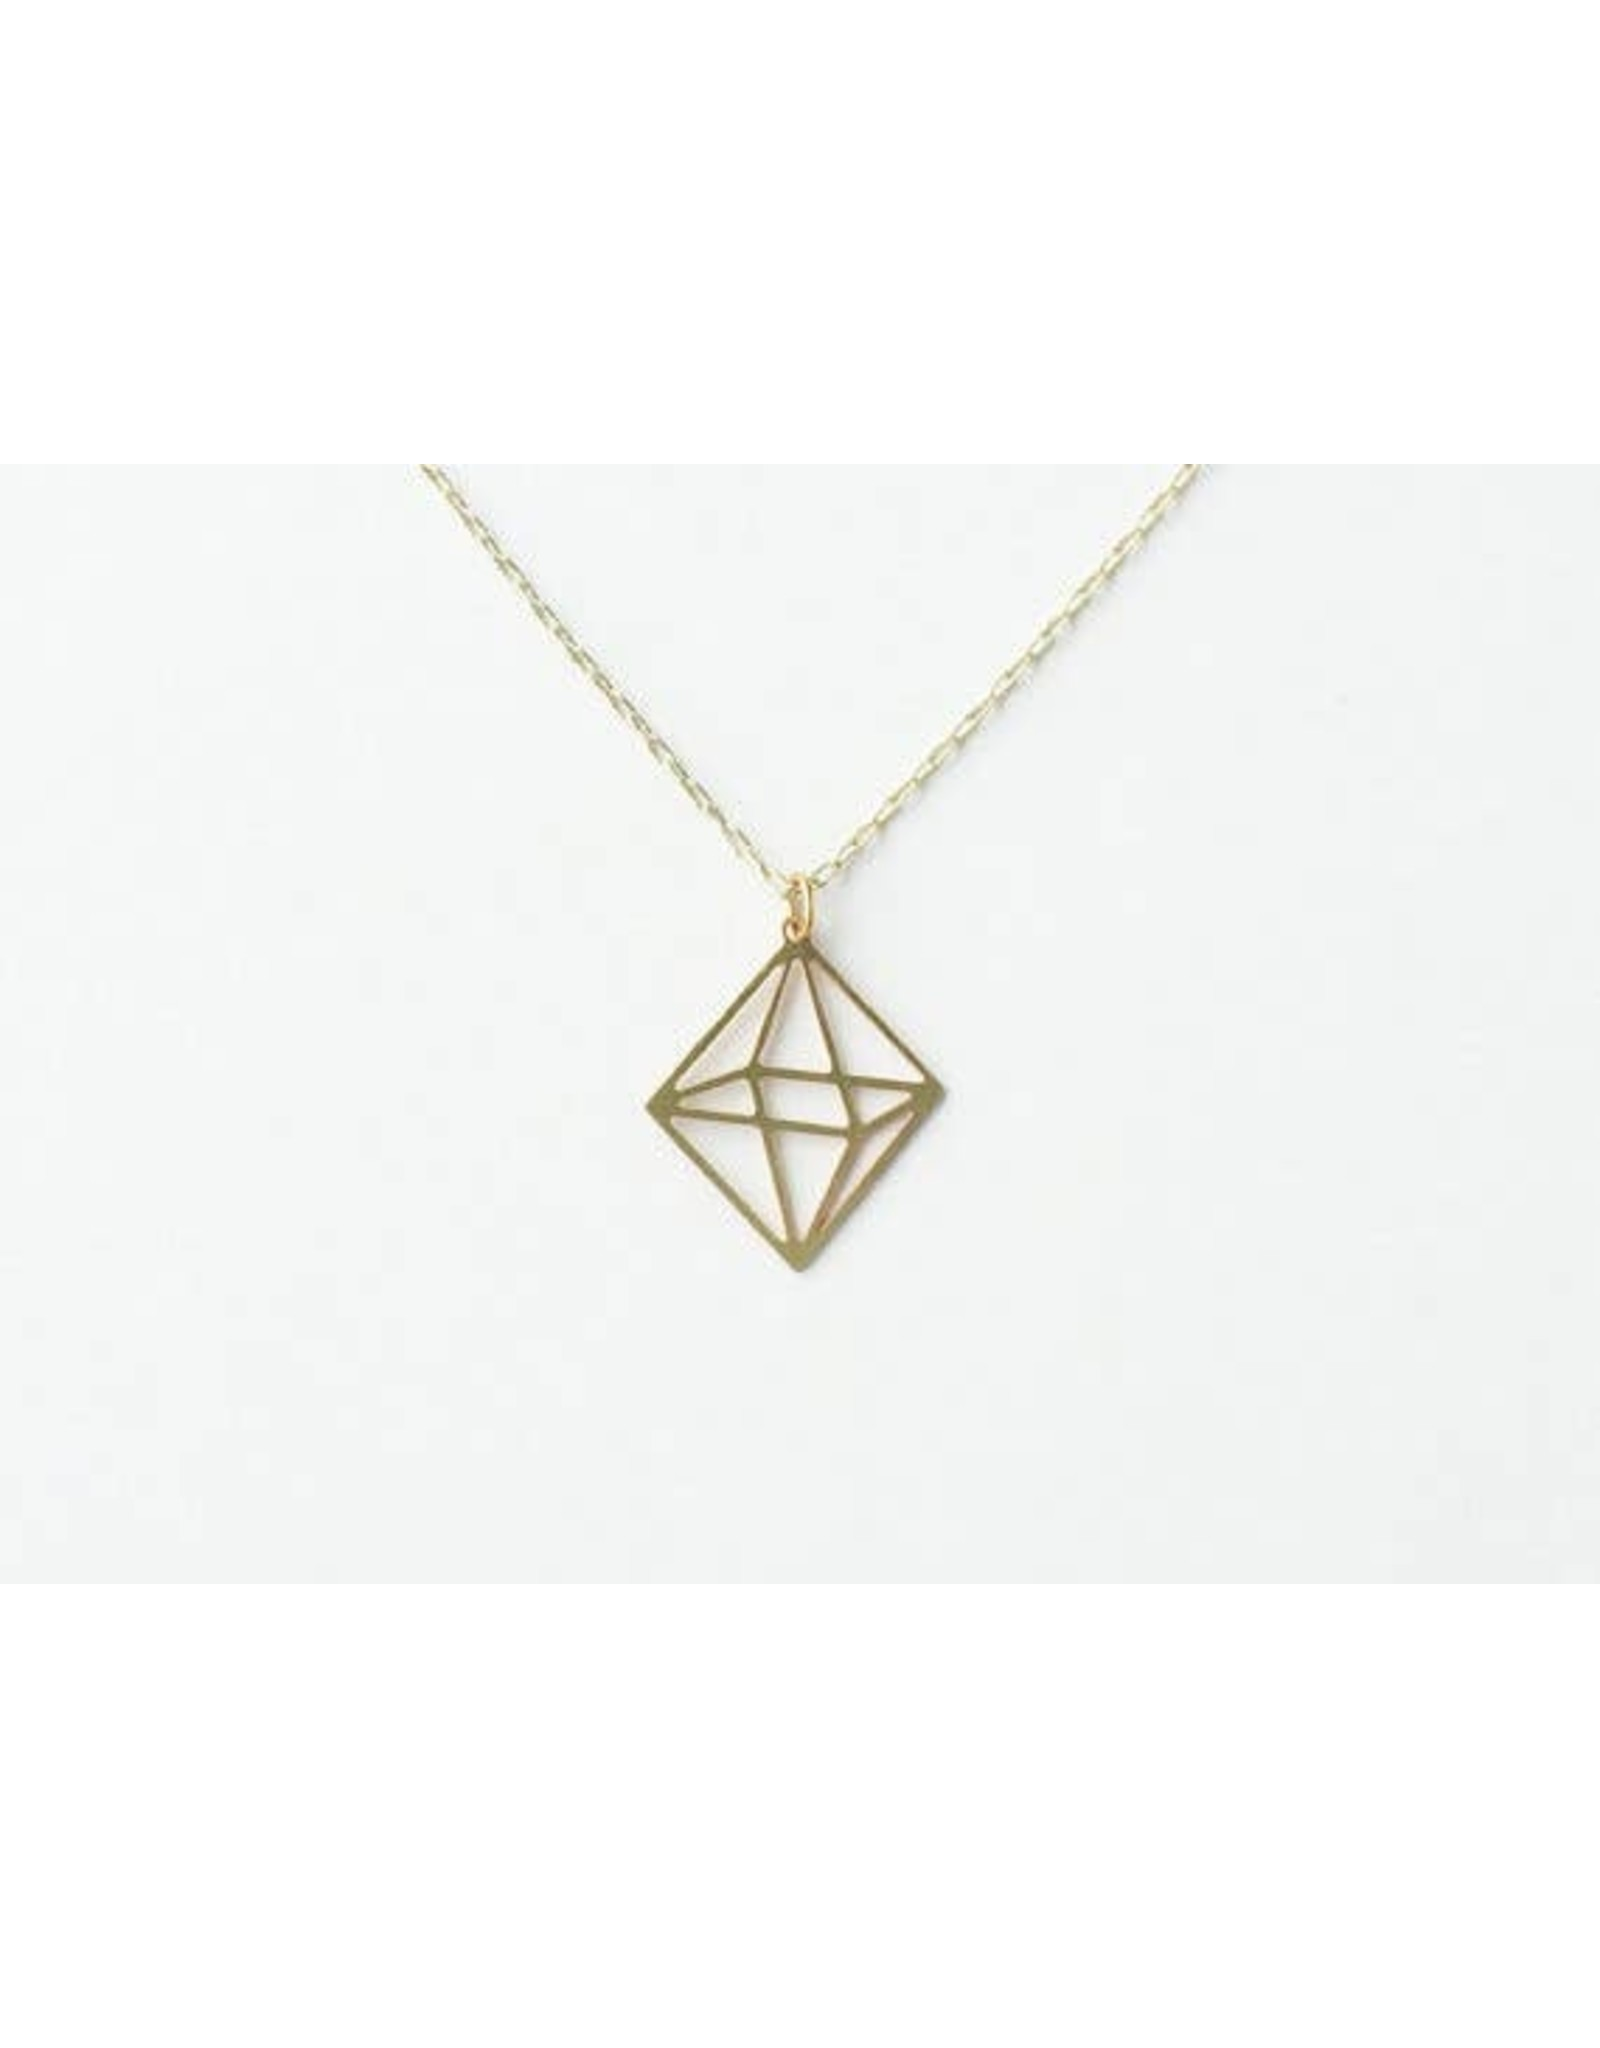 TLJ Octahedron Necklace: Gold